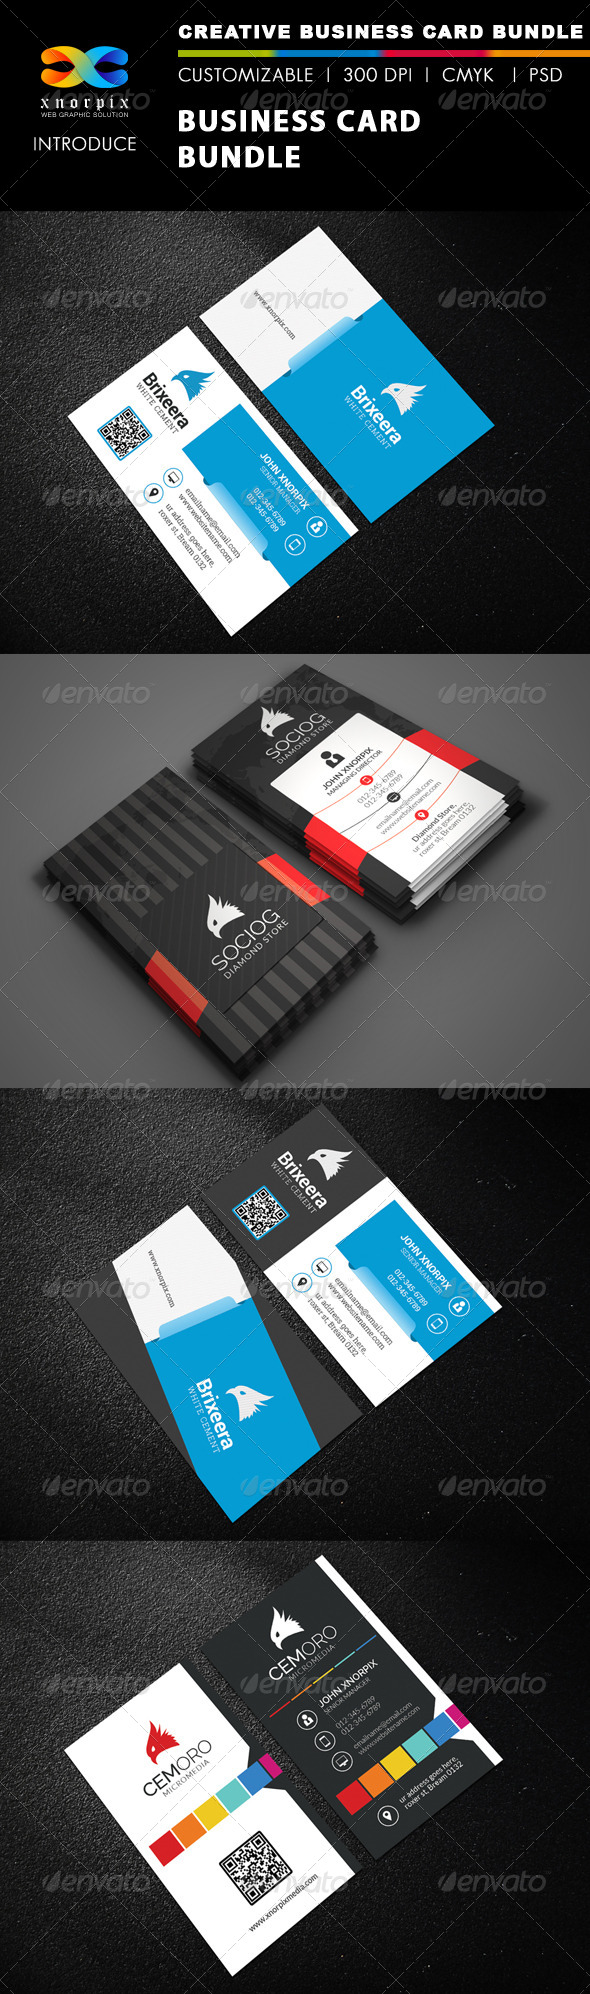 GraphicRiver Business Card Bundle 3 in 1-Vol 41 8606149